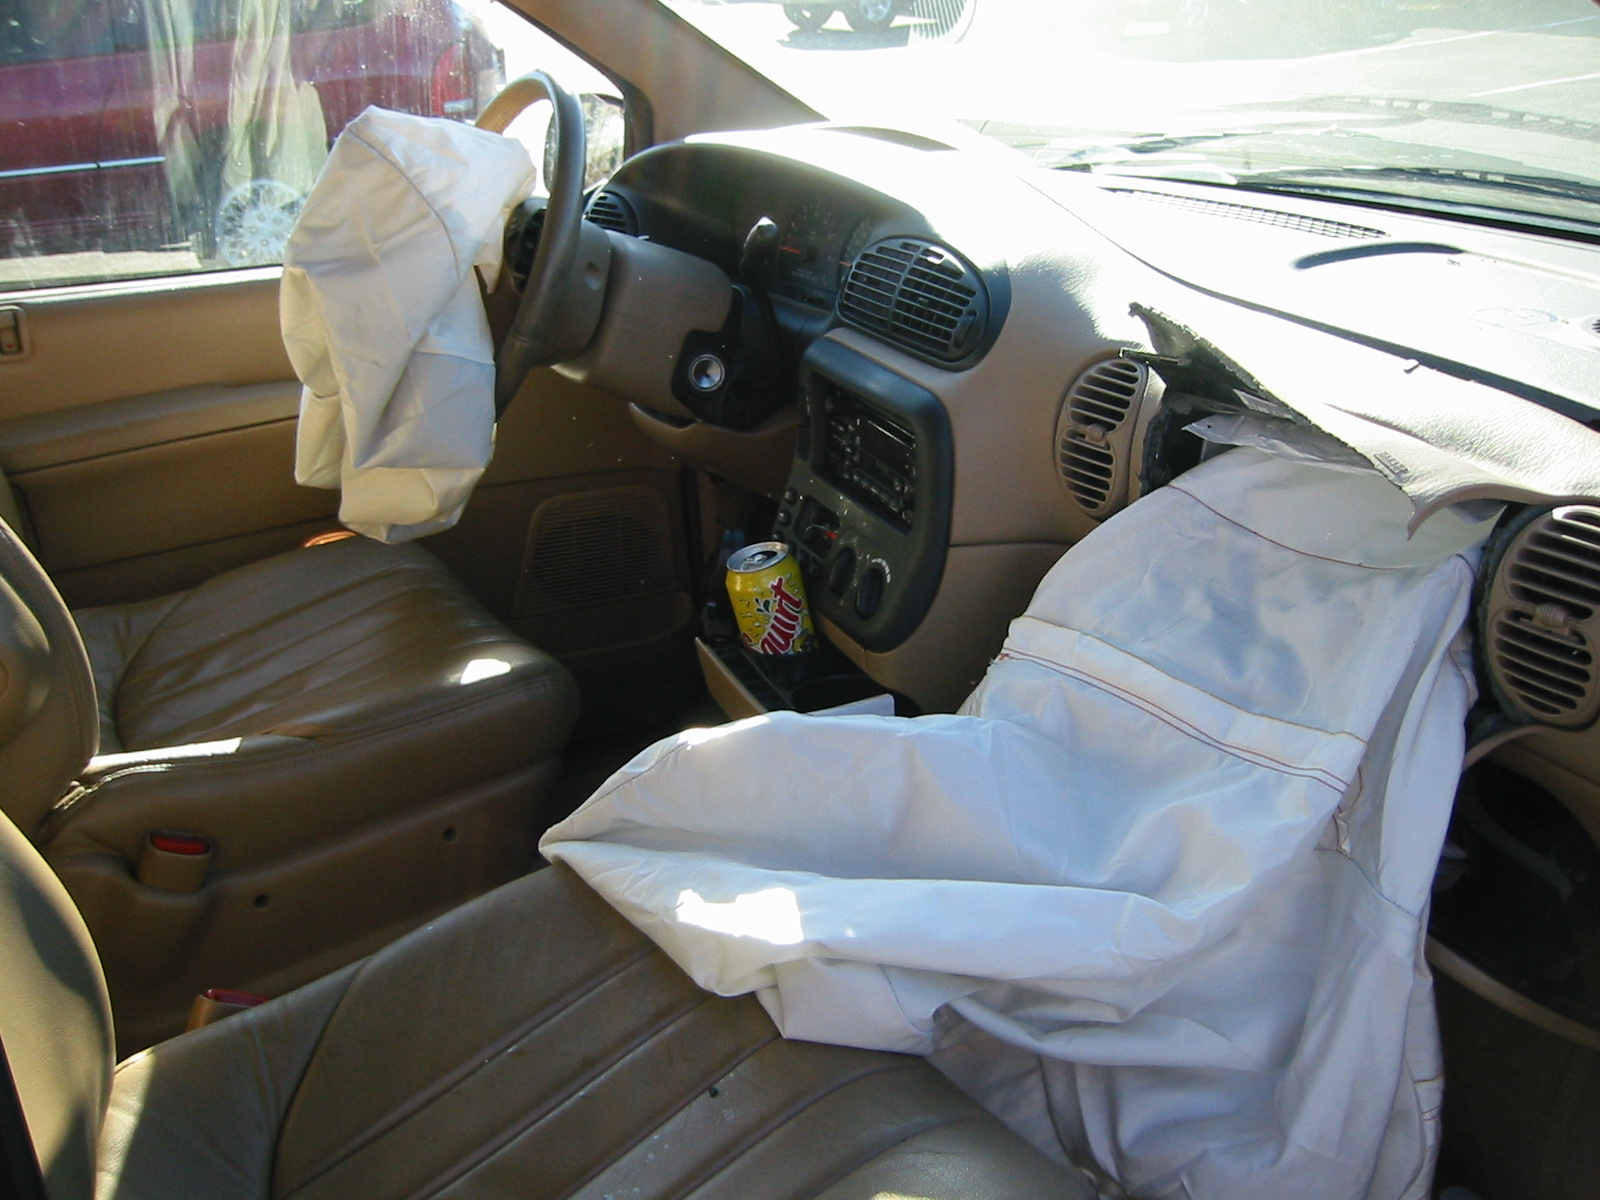 GM Says its Airbags are Safe; Issues Recall Anyways - GM Inside News